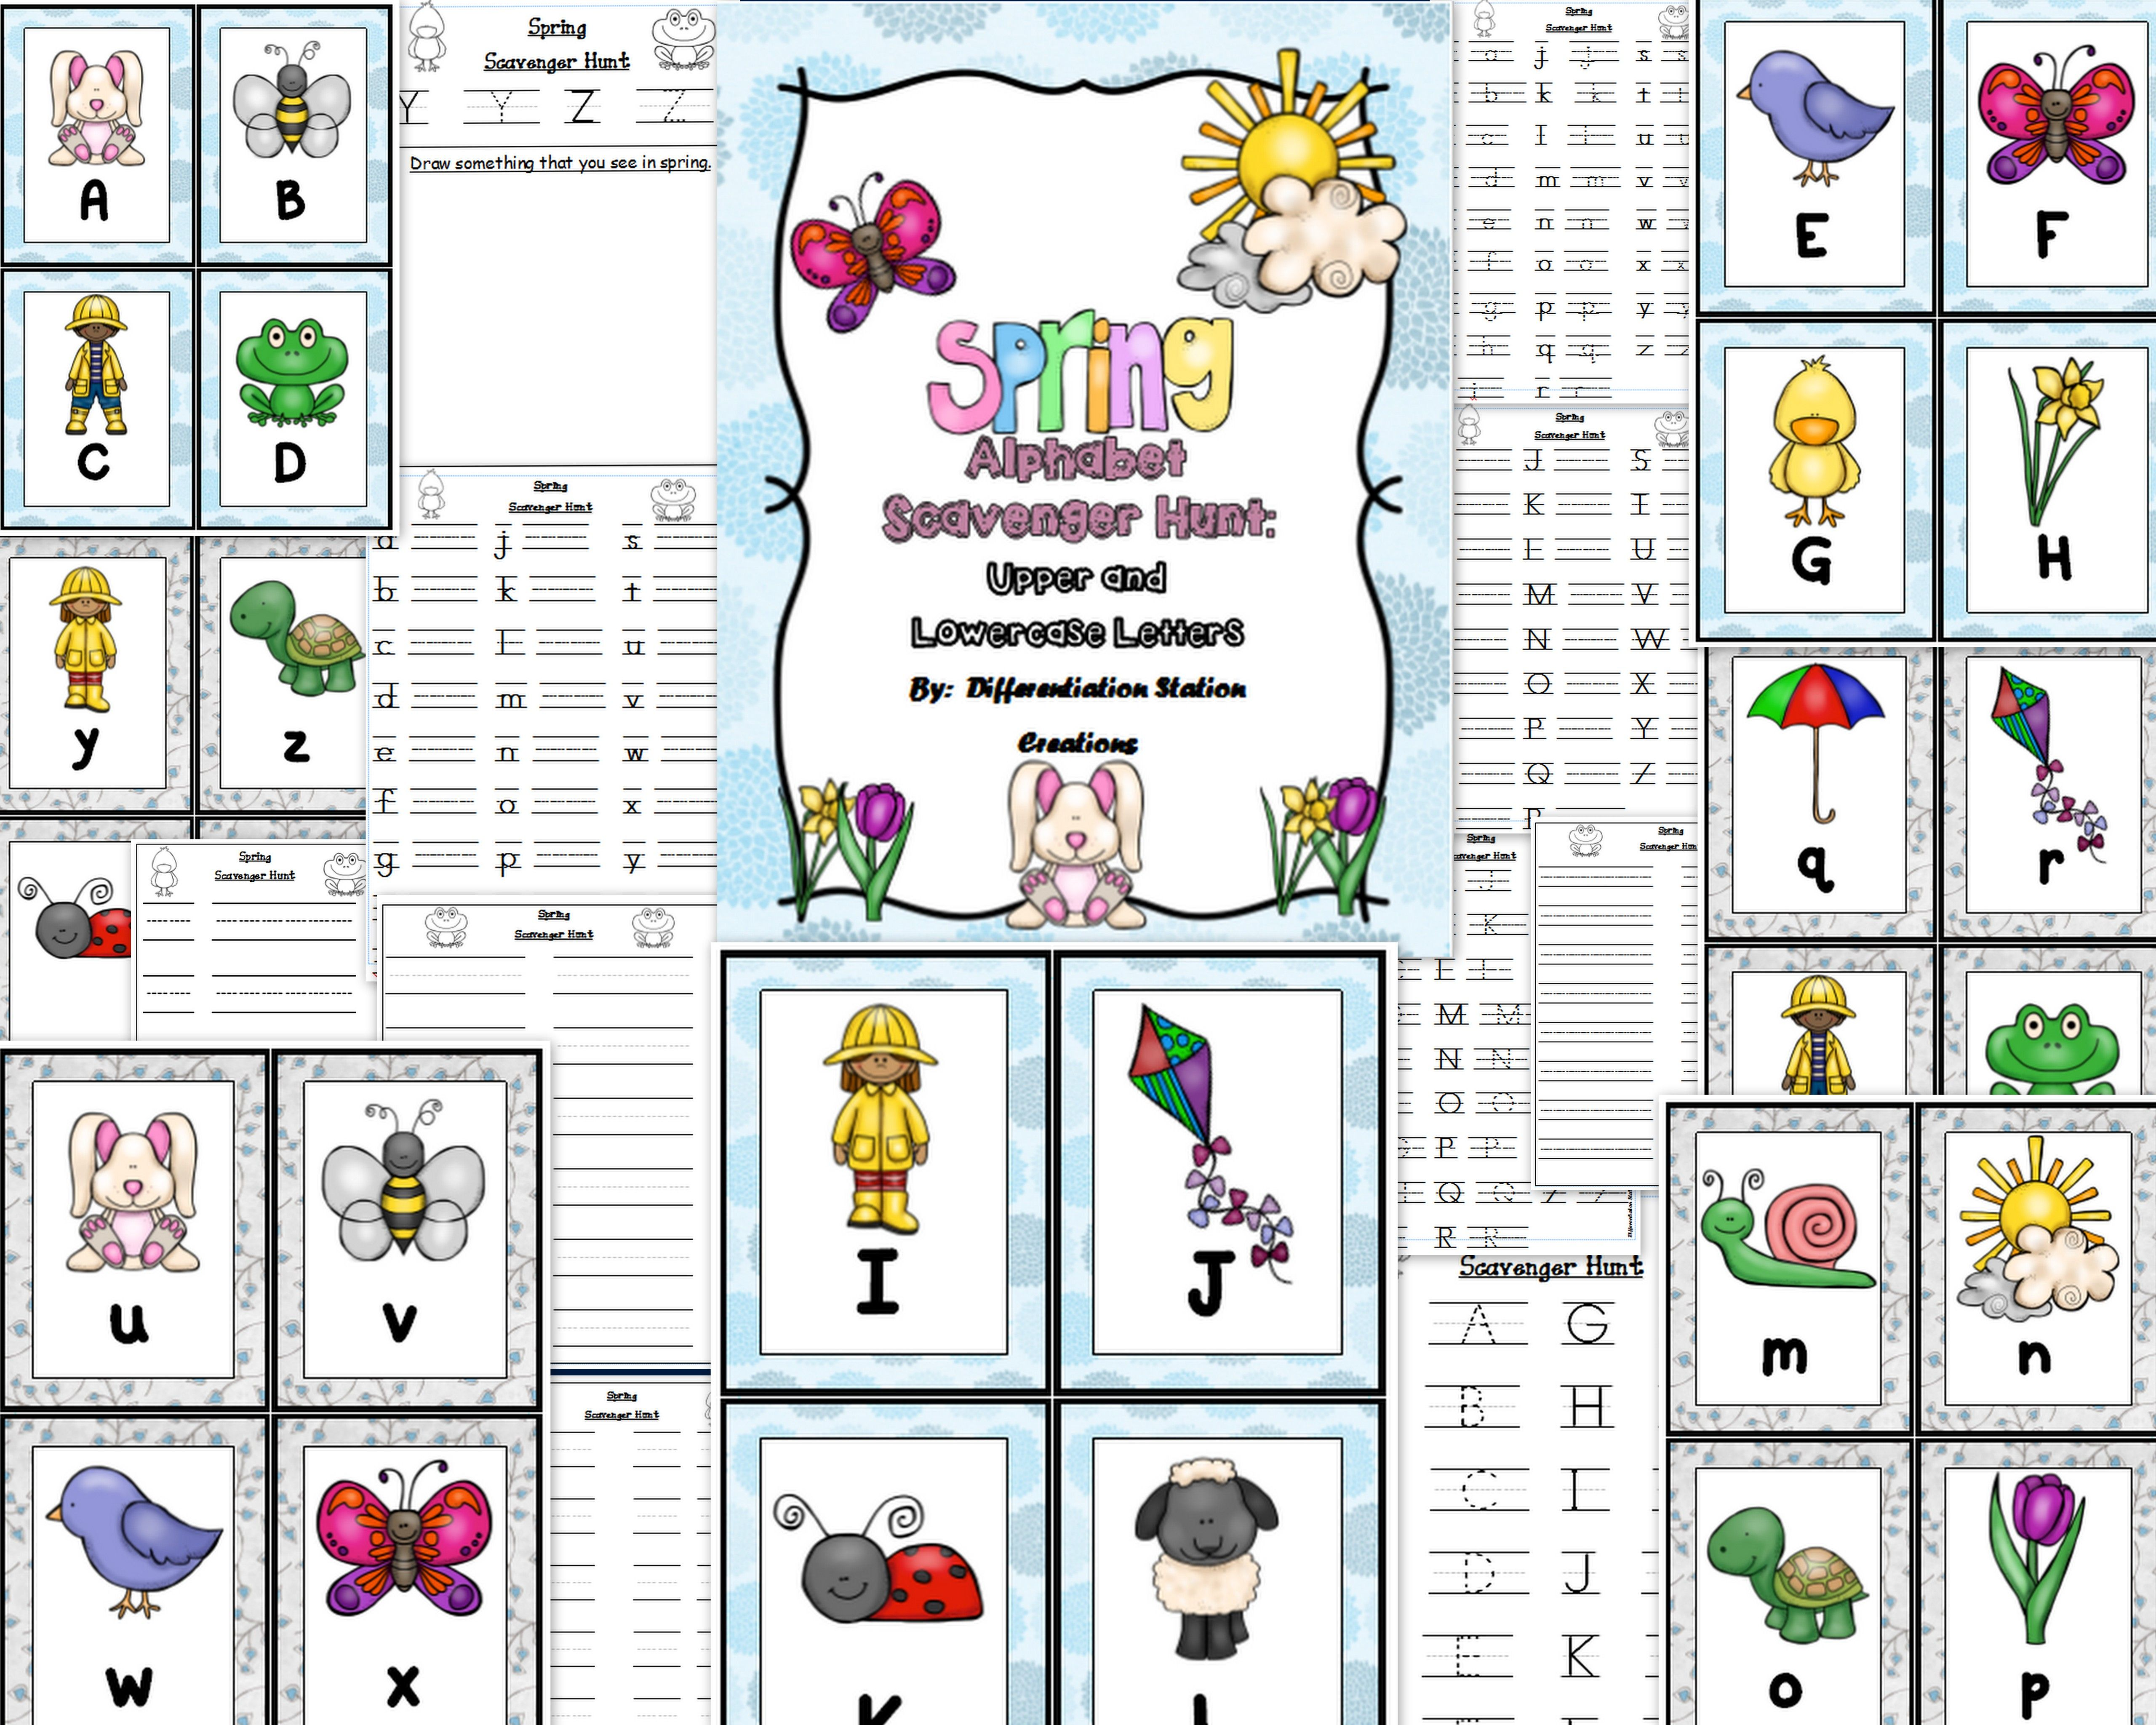 Spring Alphabet Scavenger Hunt Upper And Lowercase Letters